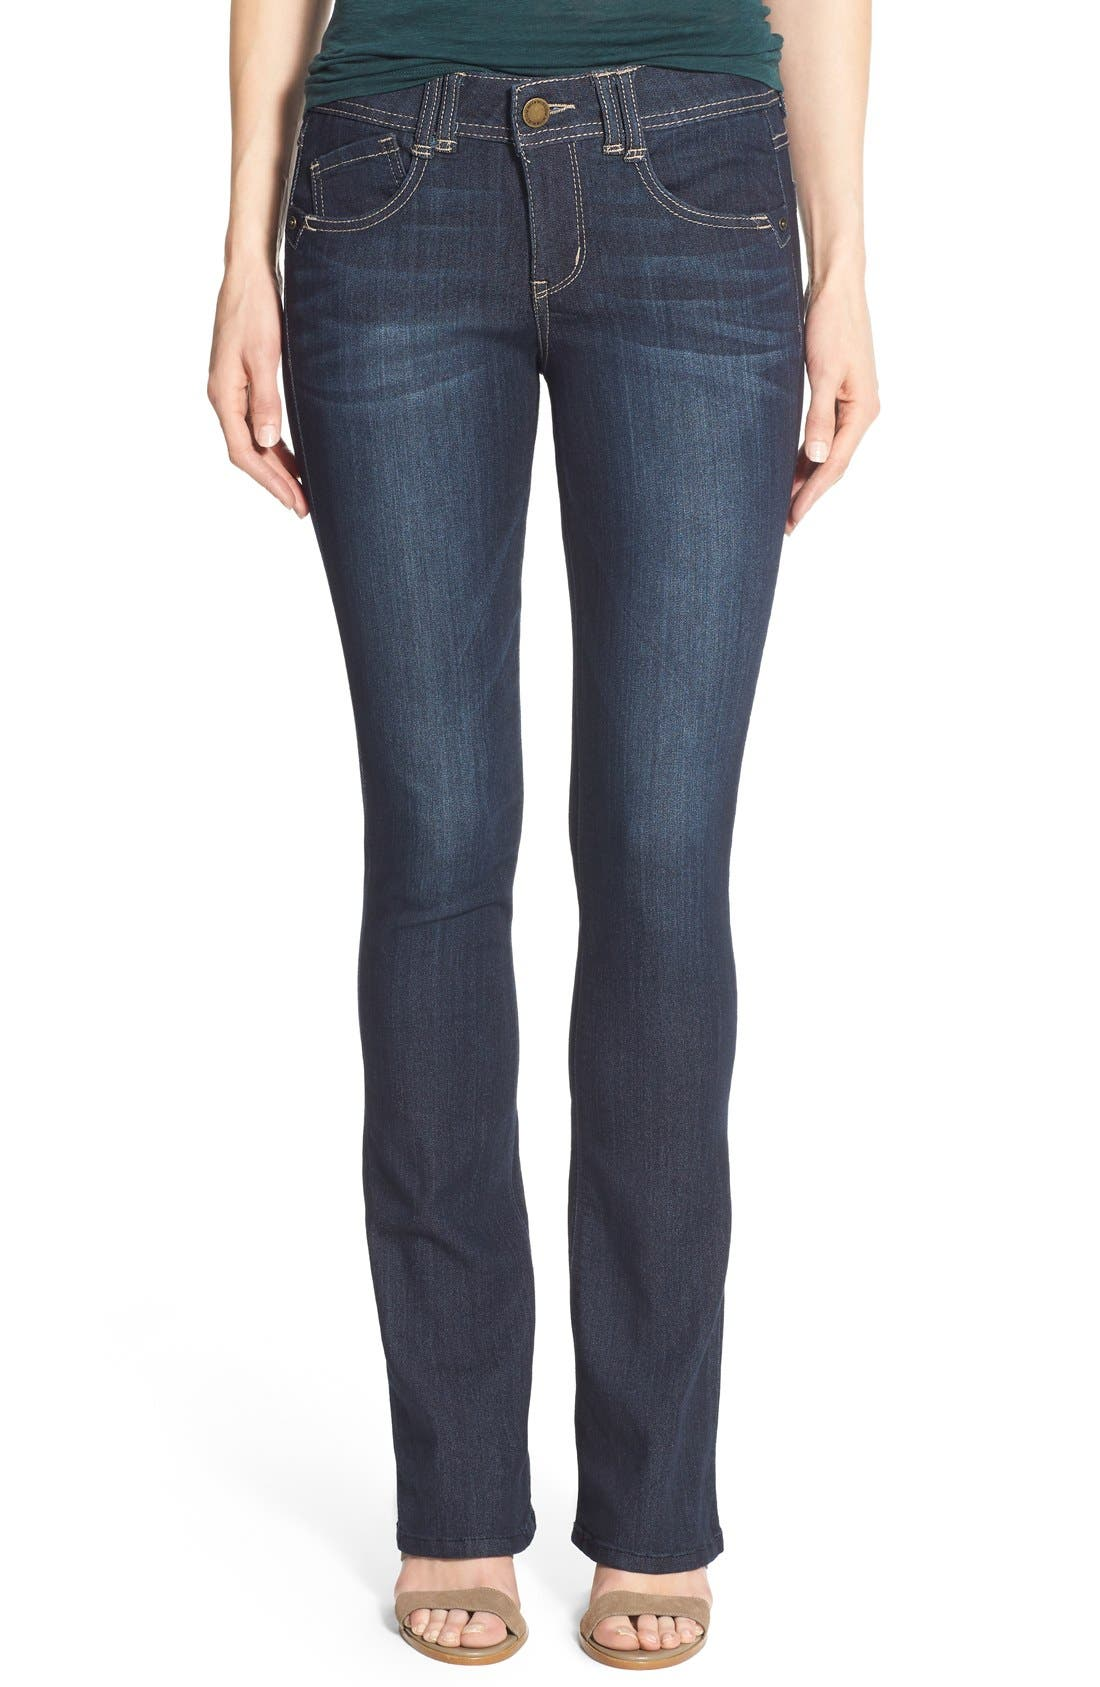 Alternate Image 1 Selected - Wit & Wisdom Ab-solution Itty Bitty Bootcut Jeans (Regular & Petite)